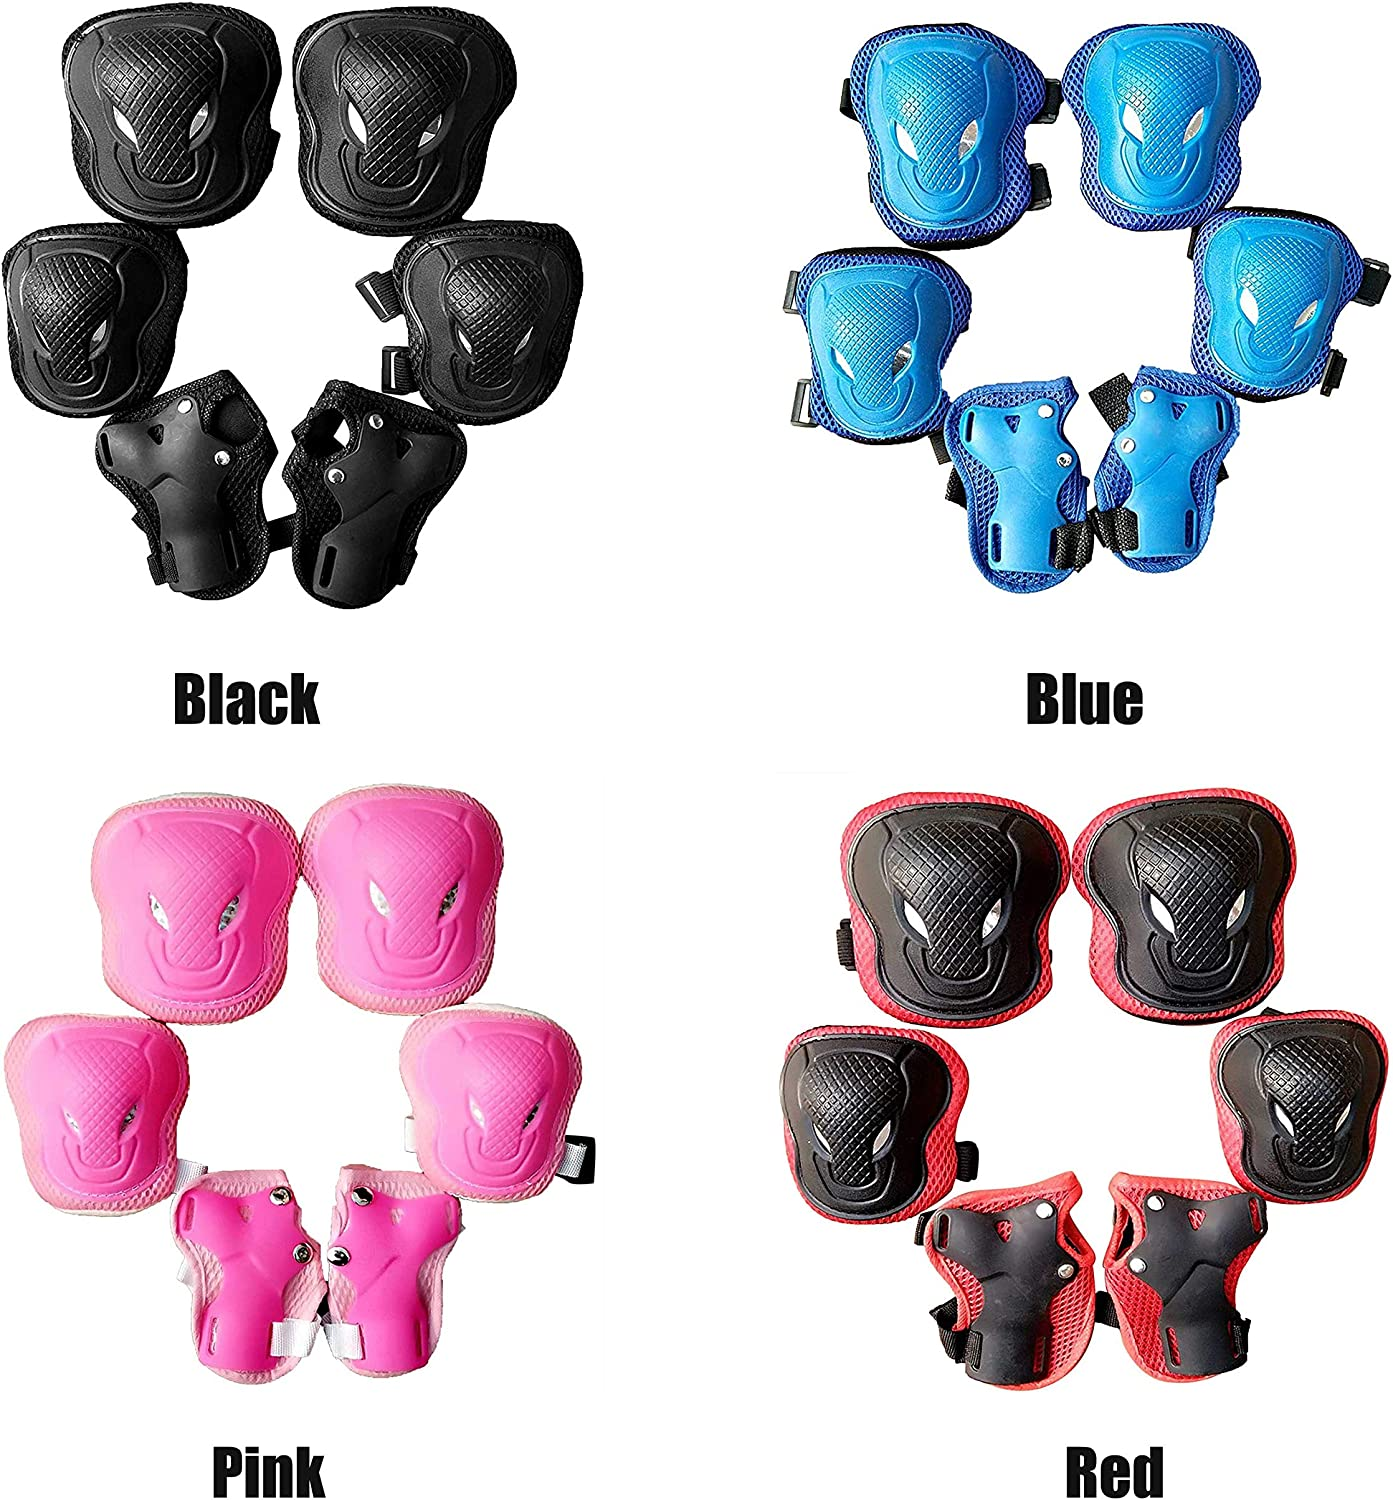 GEZICHTA Protective Gear Set 6pcs Wrist Guard Cycling for Kids Outdoor Sports Elbow Knee Pads Adjustable Accessories Sponge ller Skating Skateboarding Safety Unisex Black